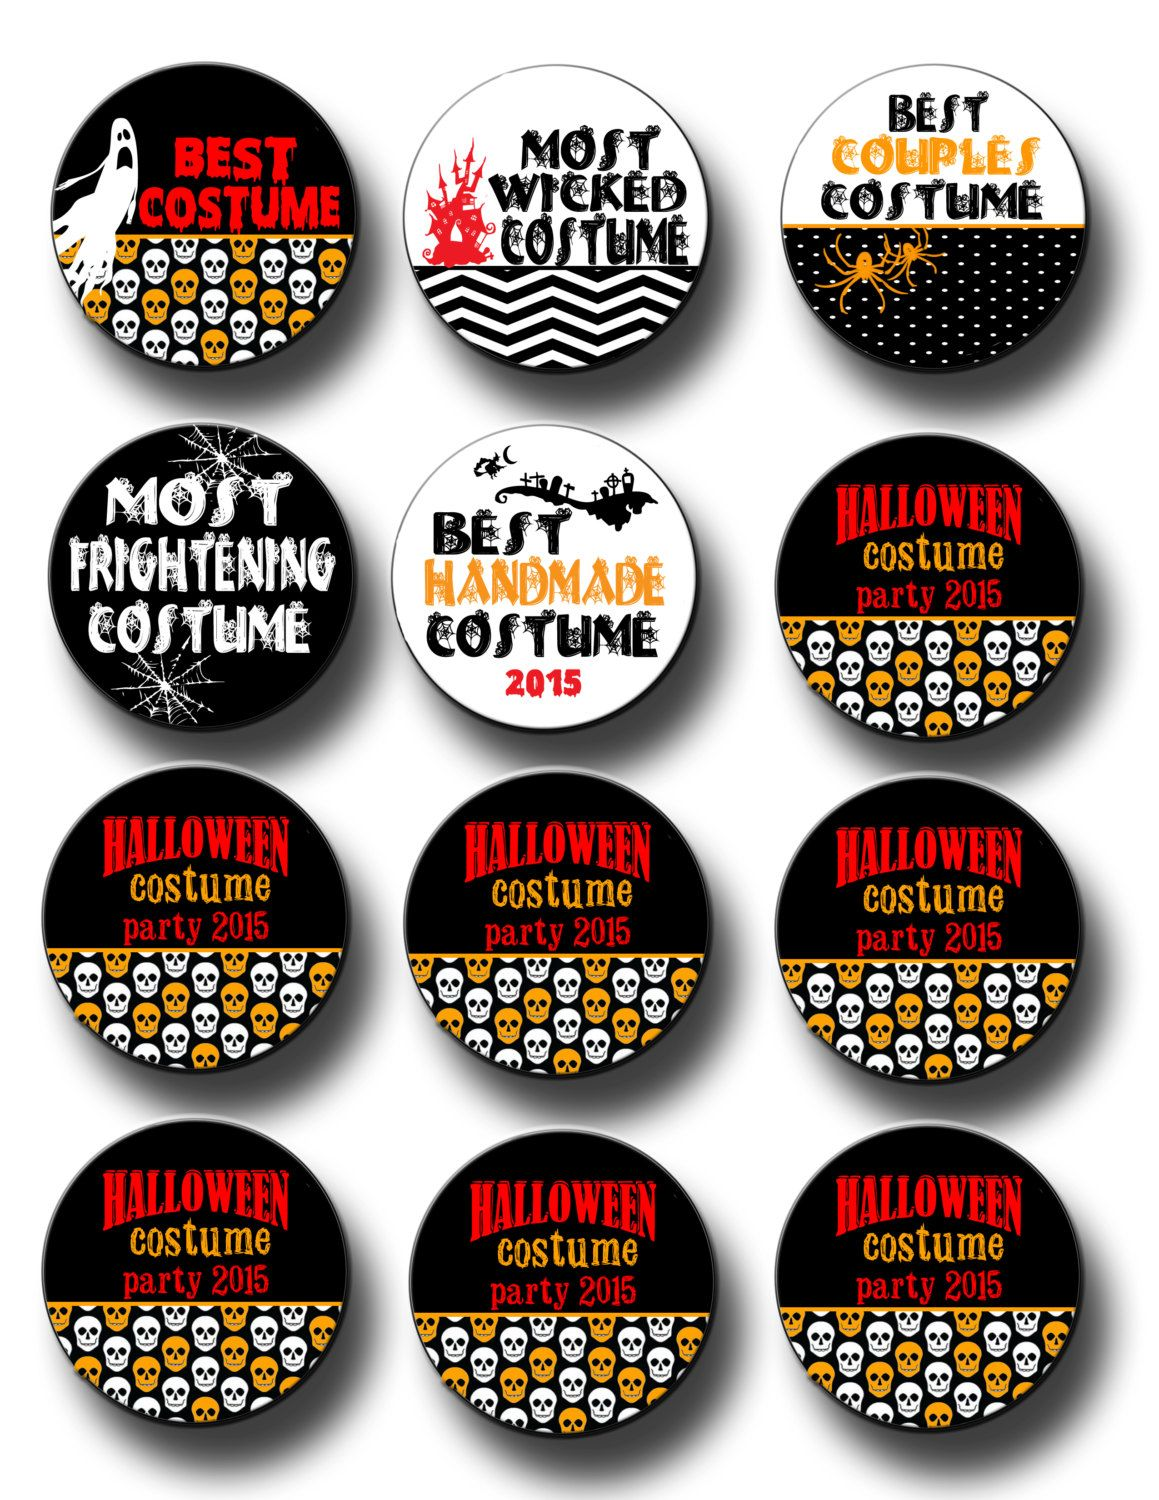 Halloween Costume Party Award 2.25 inch Pinback buttons pins ...